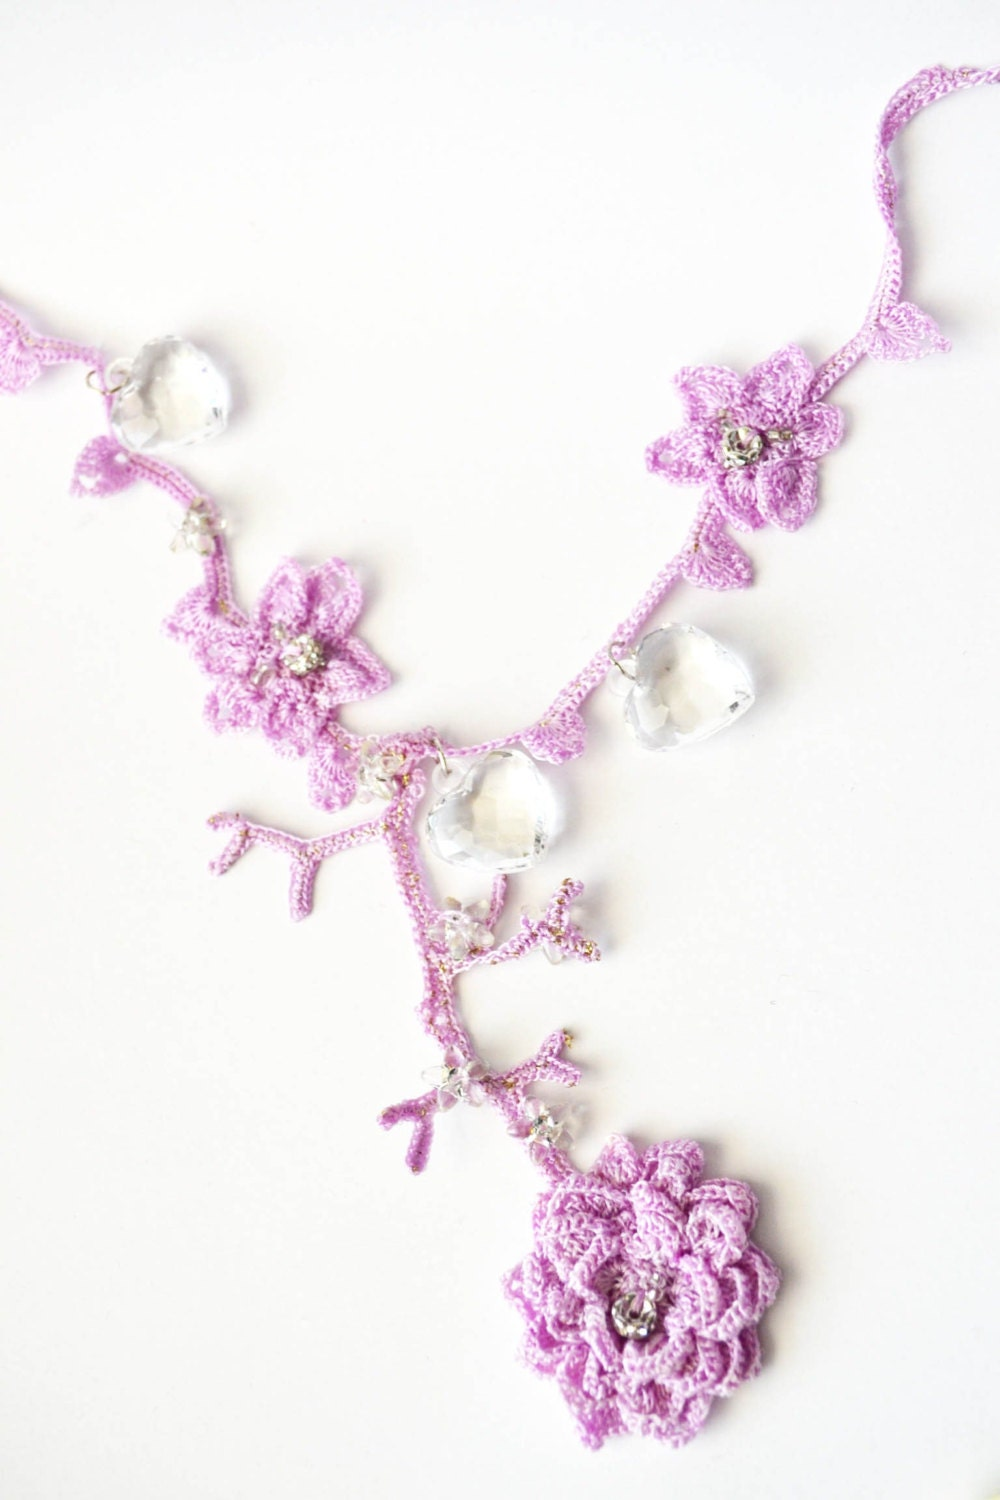 Dainty crochet necklace bridal necklace chain light purple with flowers and hearts, amazing beauty Spring Blossom - Laila4you